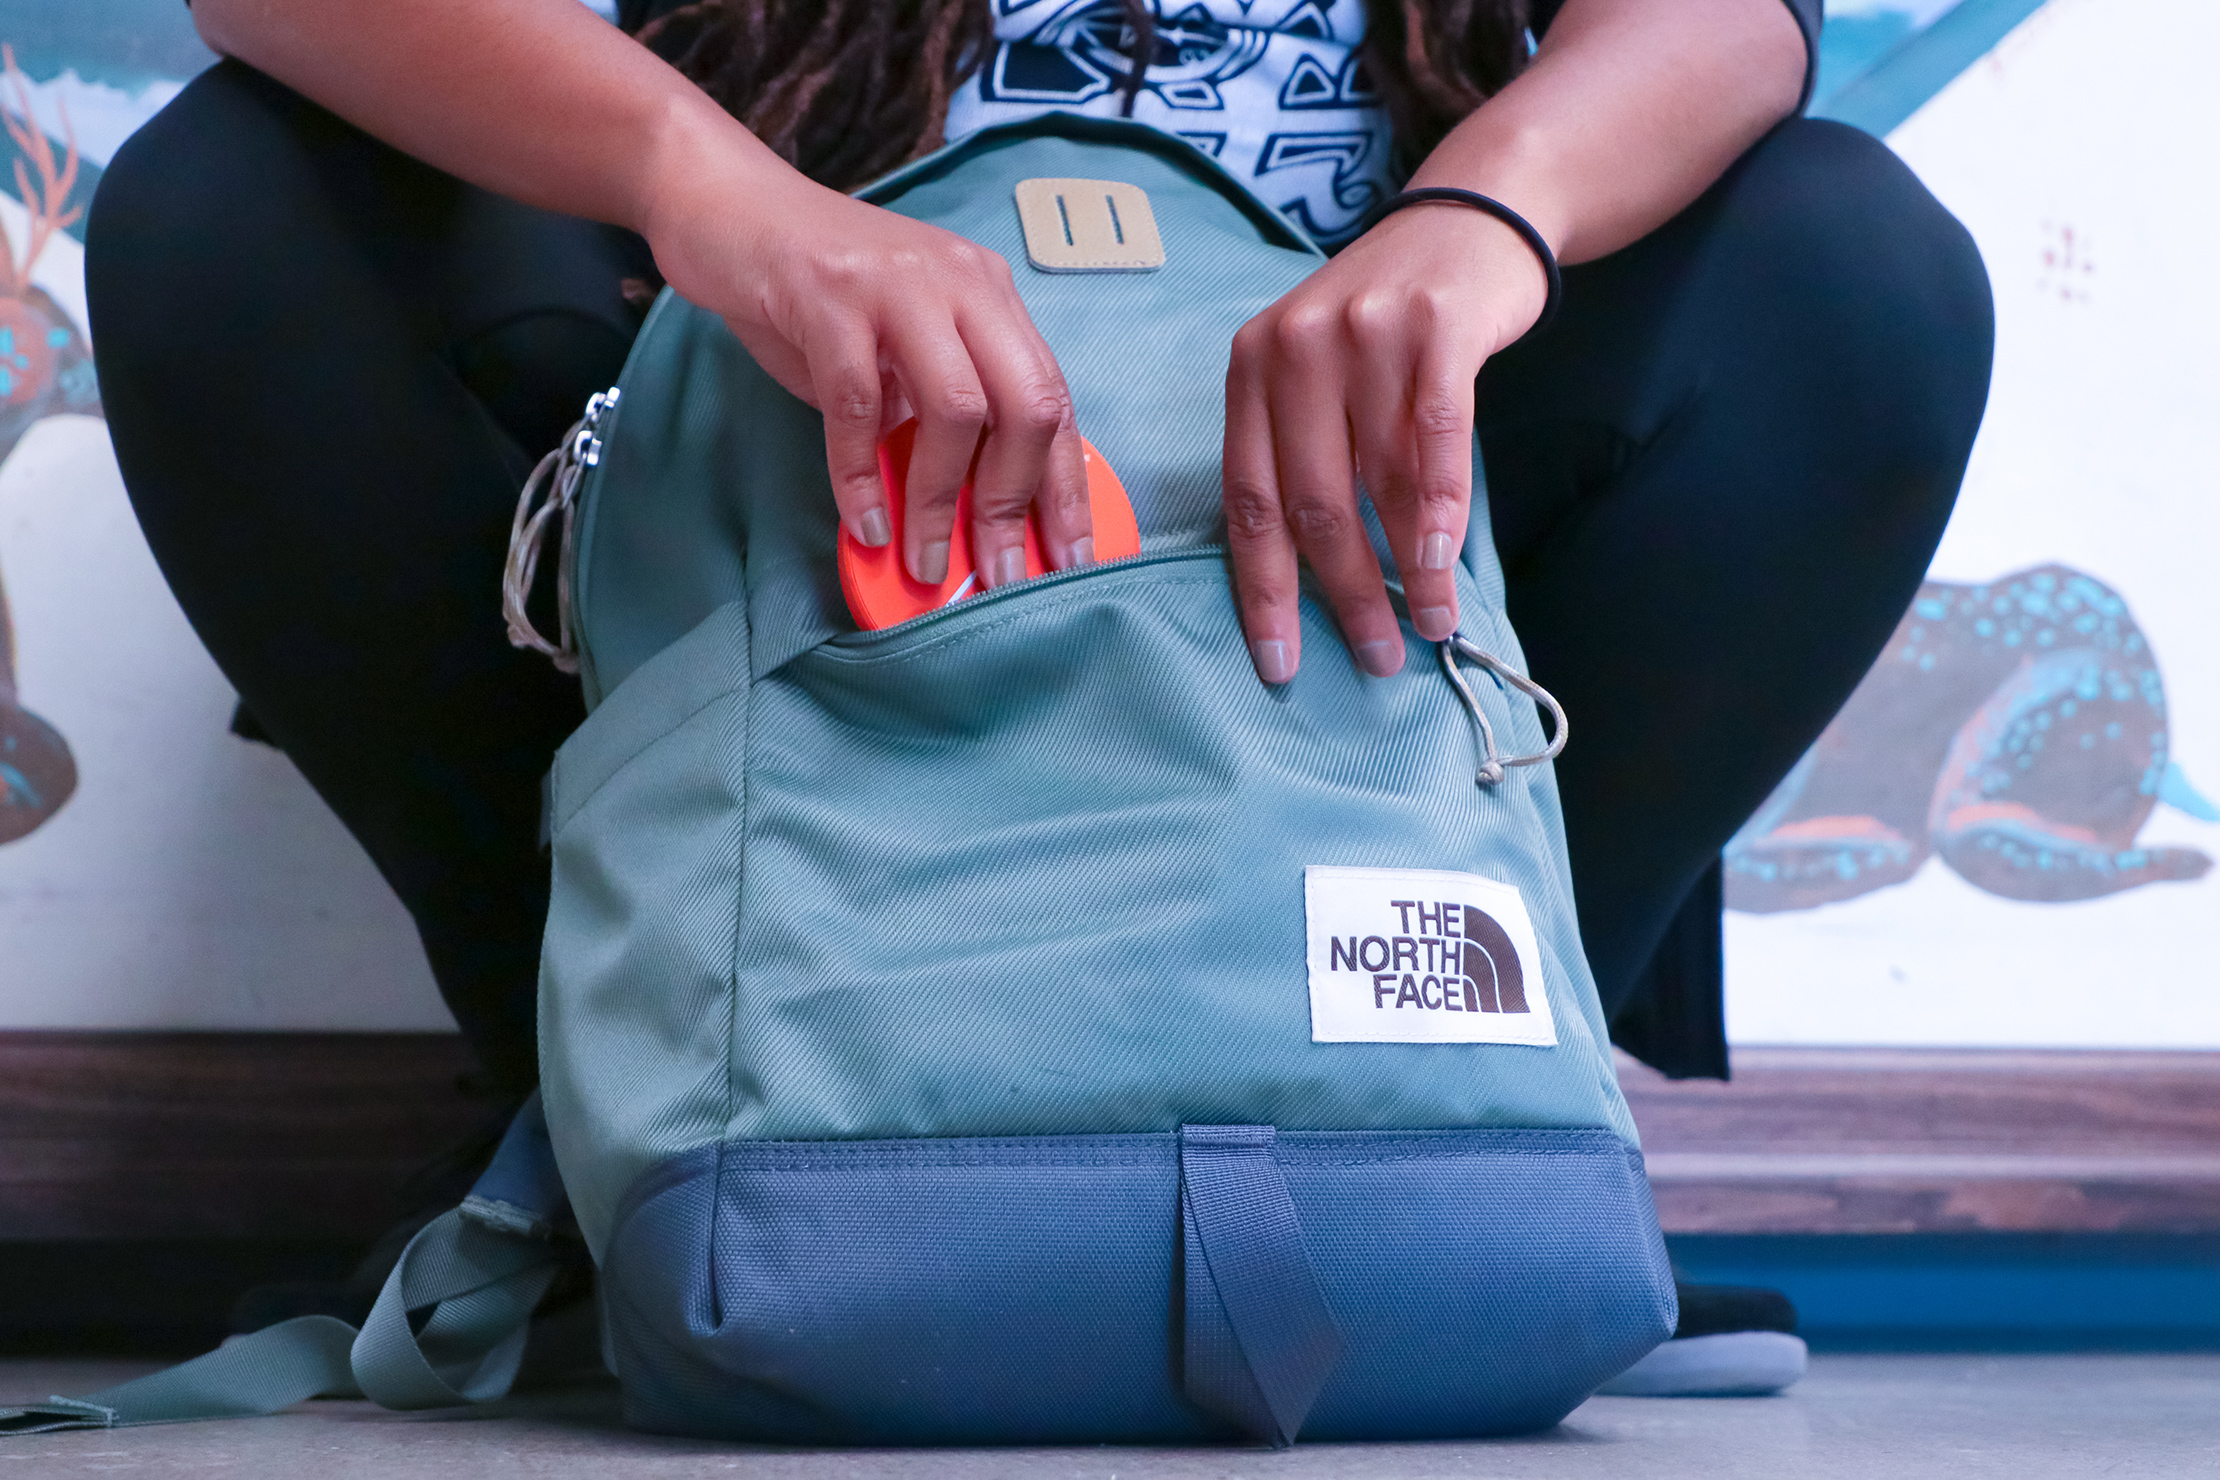 The North Face Daypack front compartment usage